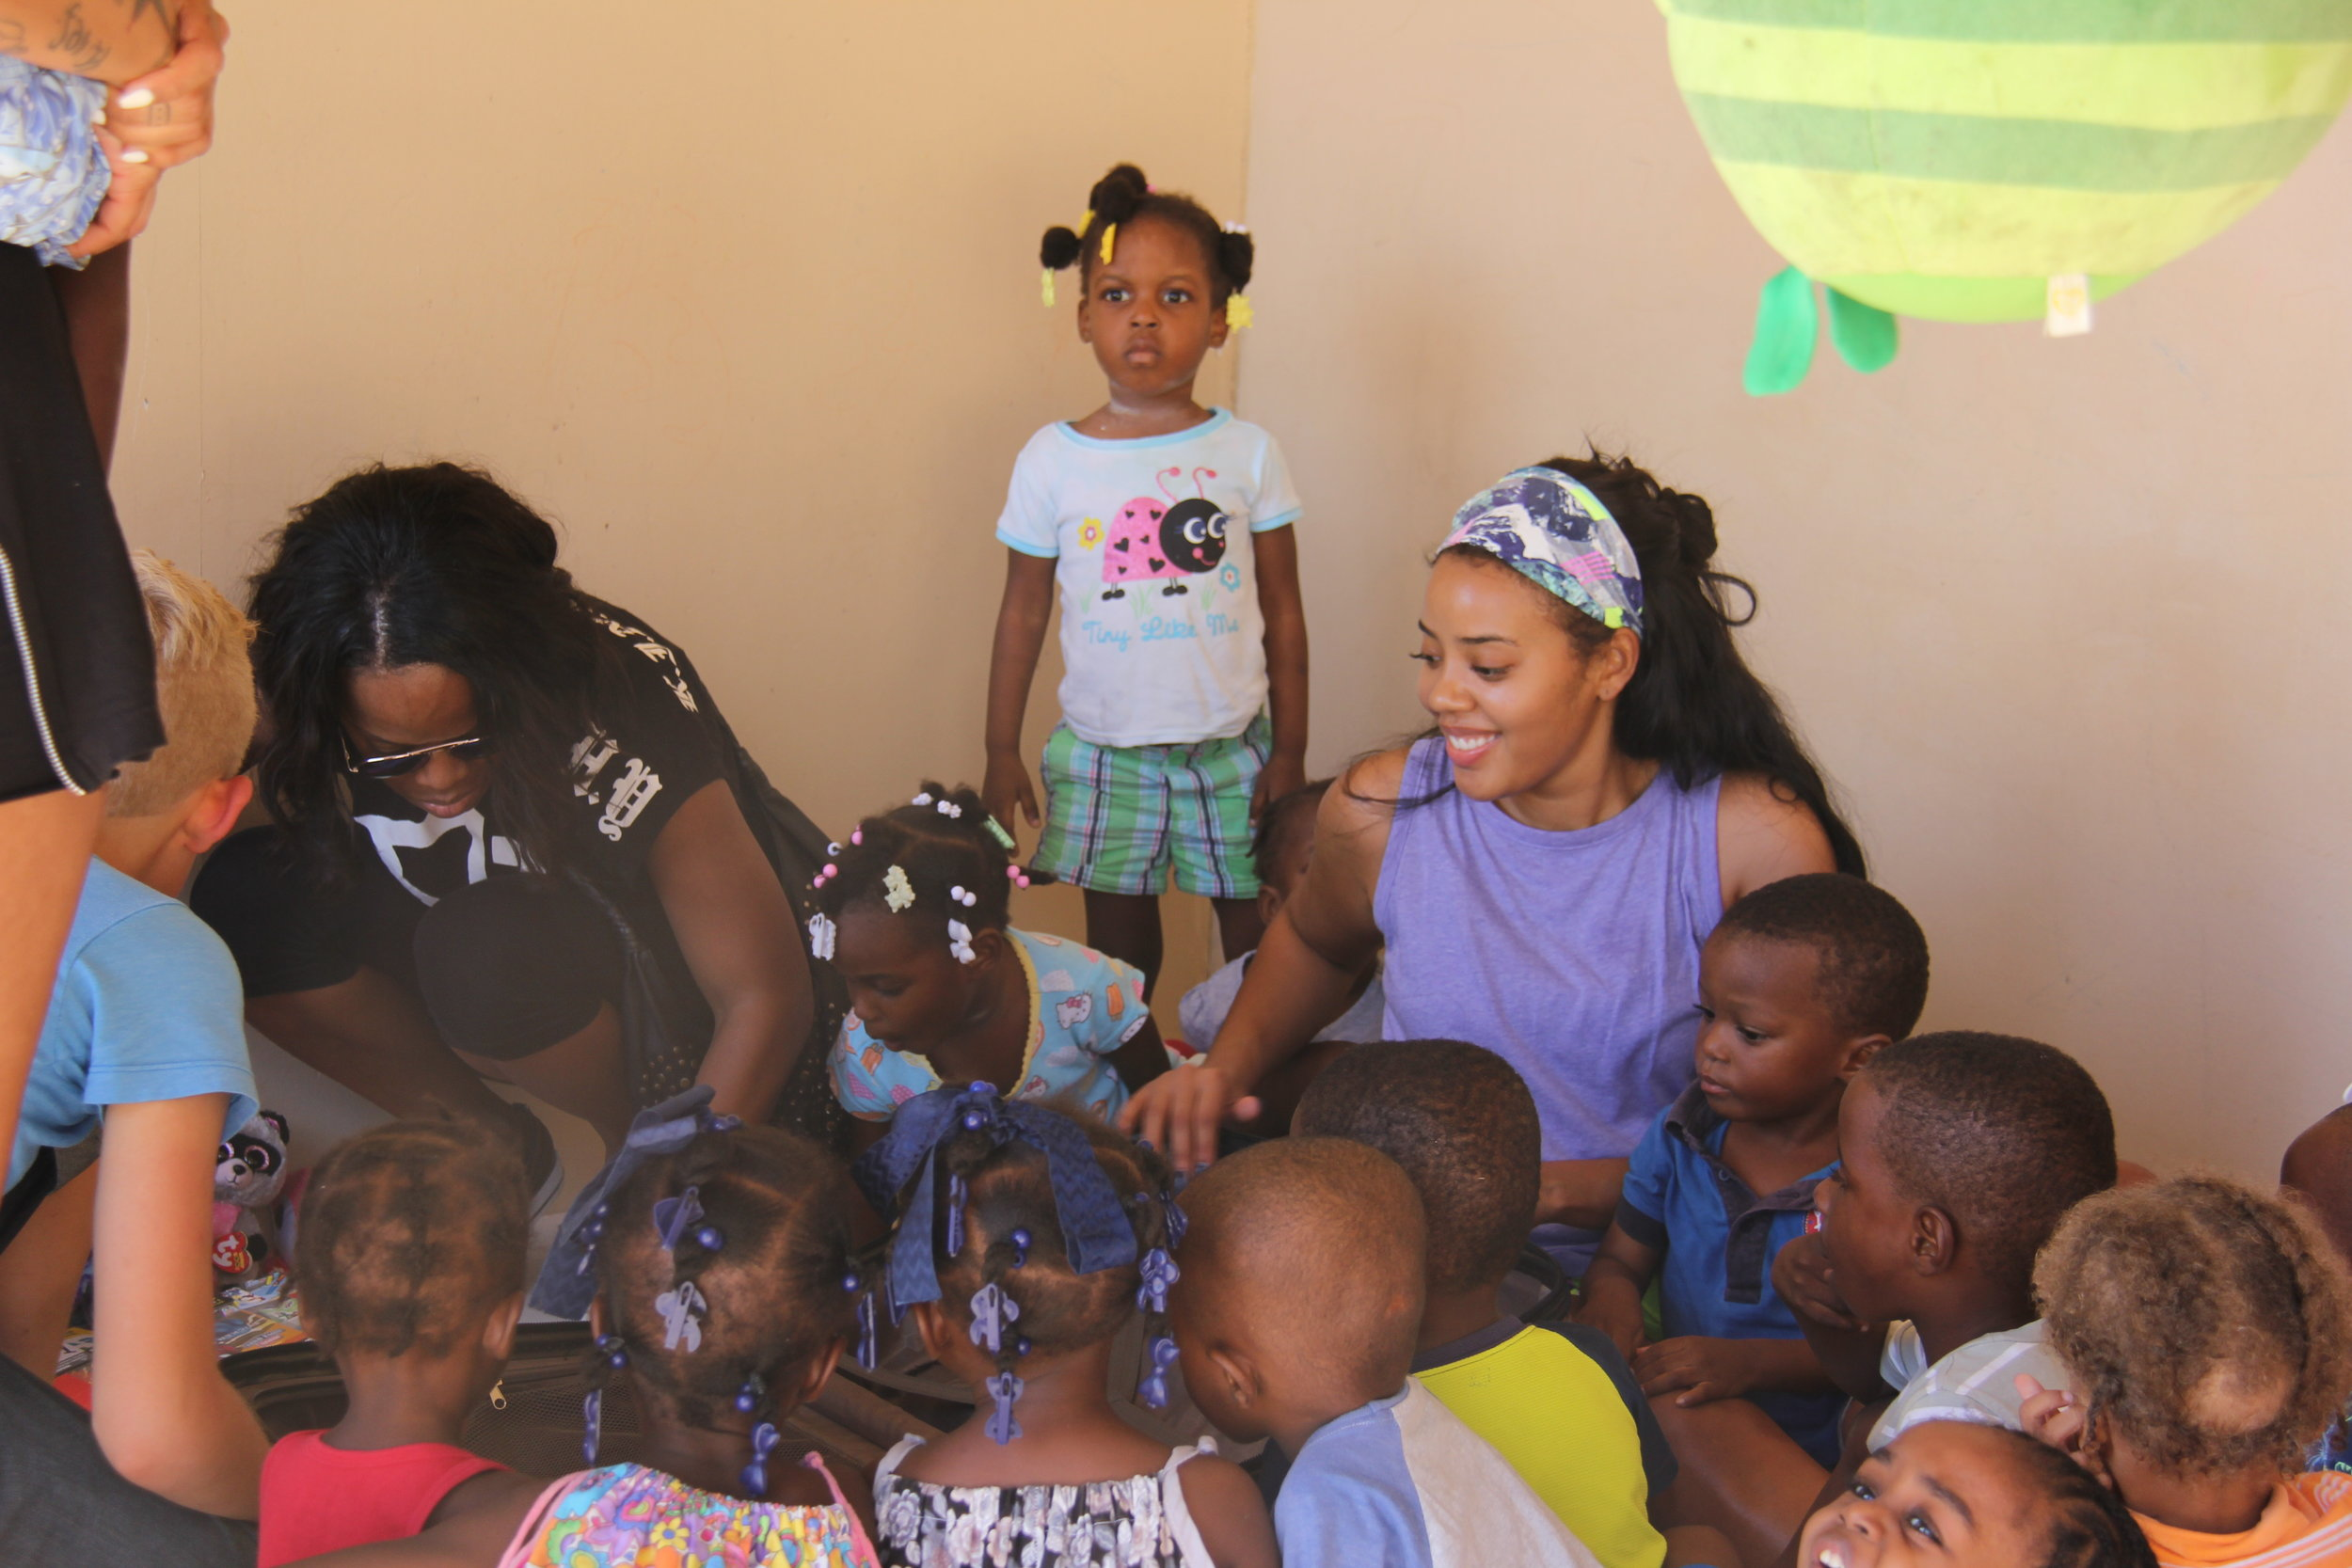 Pictured: Global Influencer, Angela Simmons, serving and engaging with youth at the Children of Grace Orphanage.